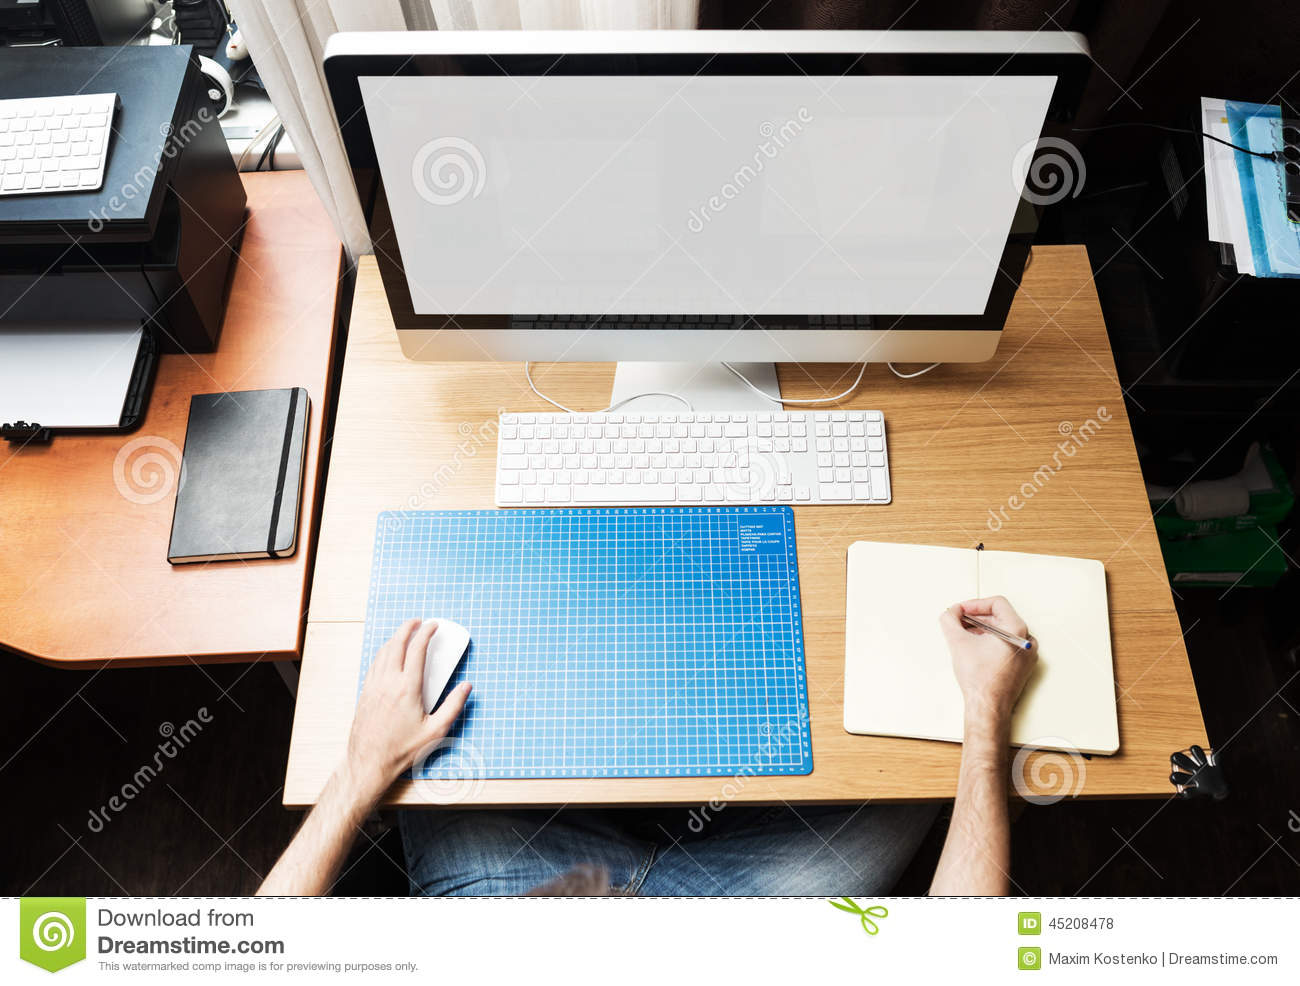 Graphic design job work from home